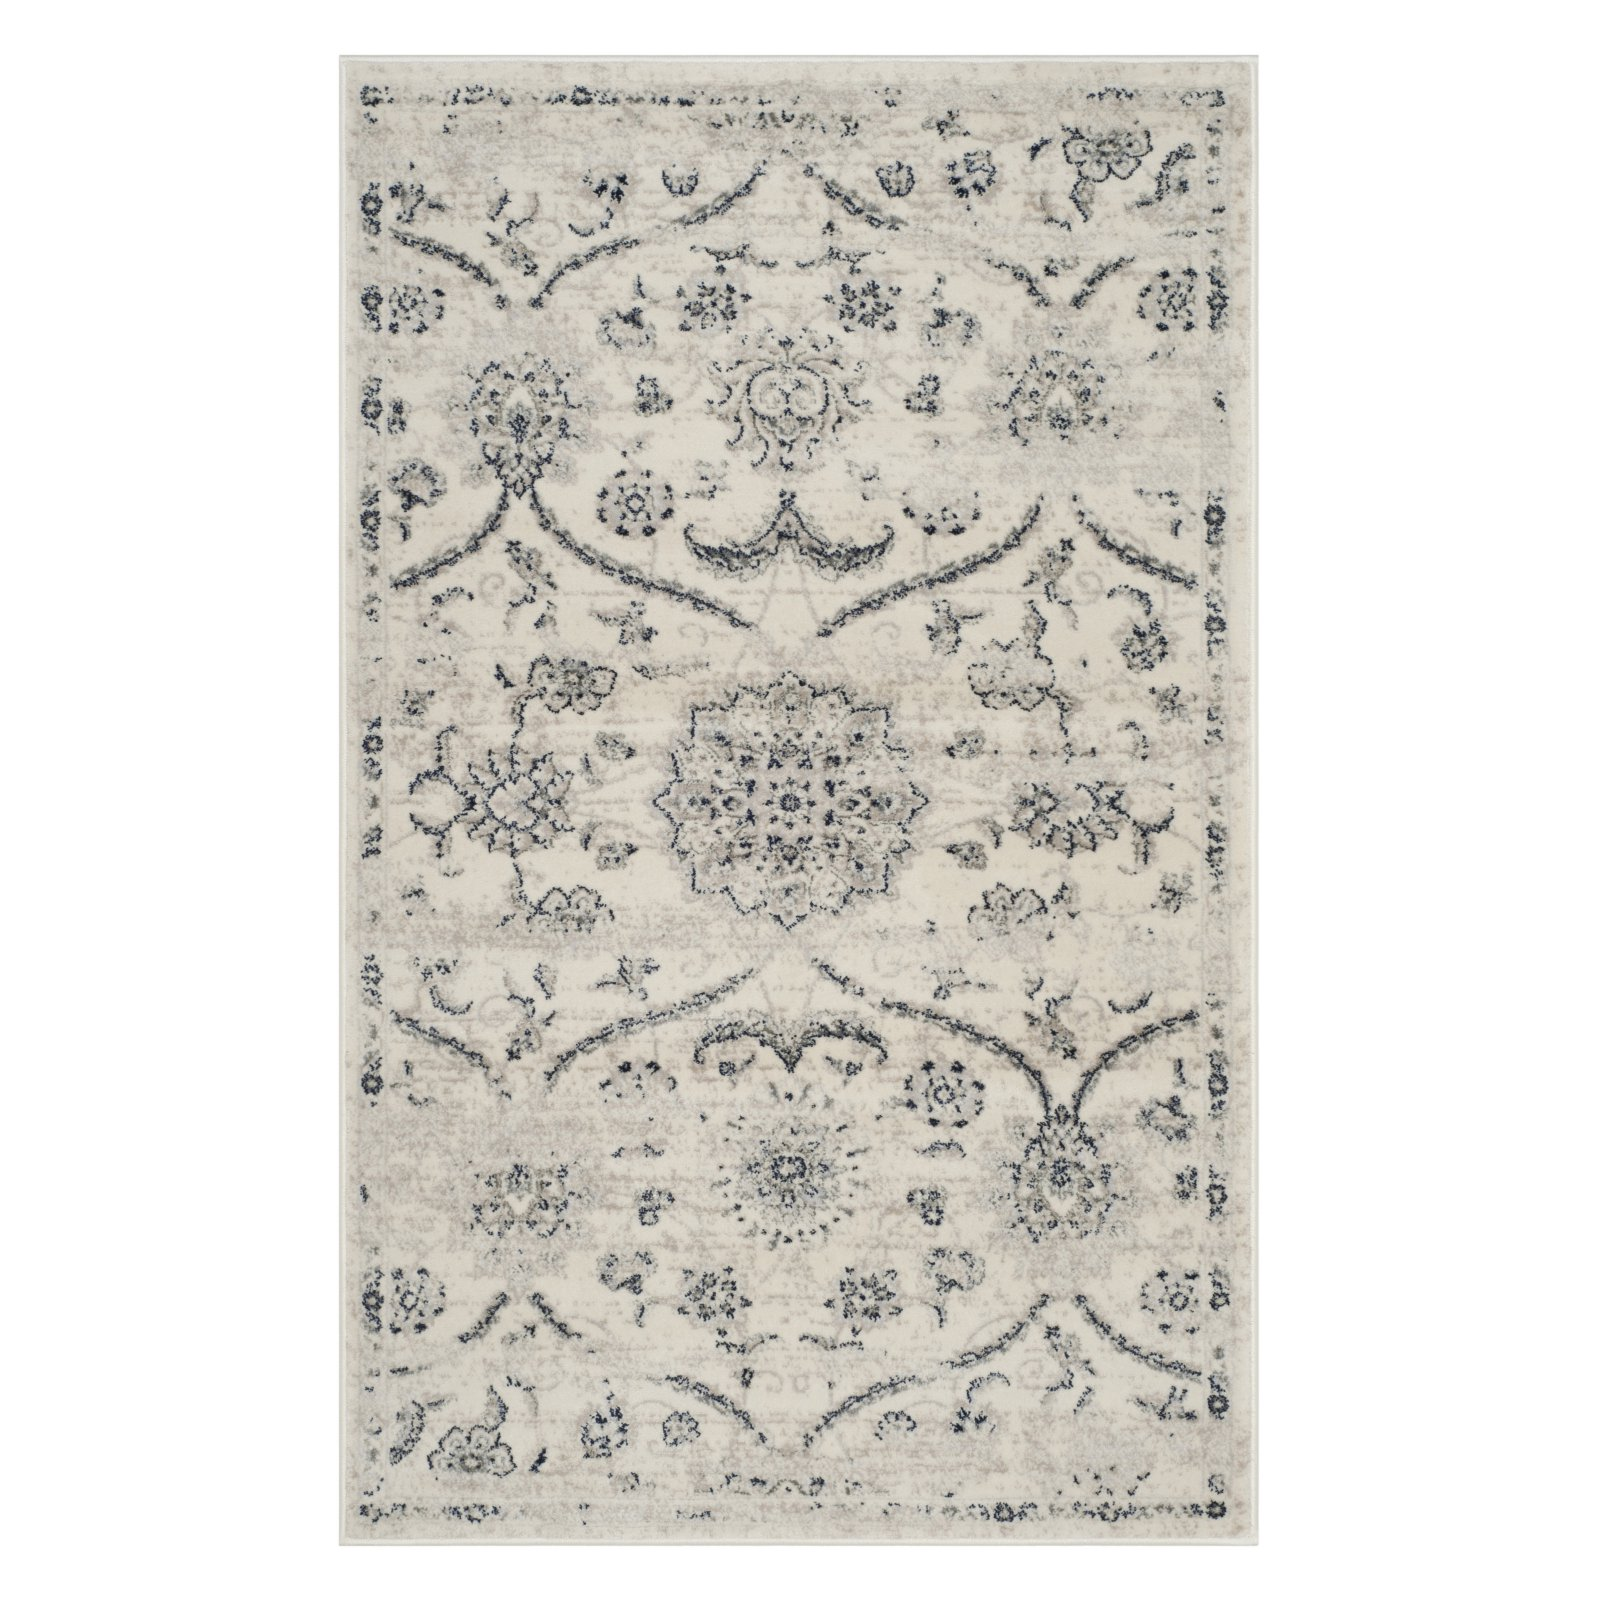 Safavieh Carnegie Paskal Power-Loomed Area Rug, Cream/Light Grey